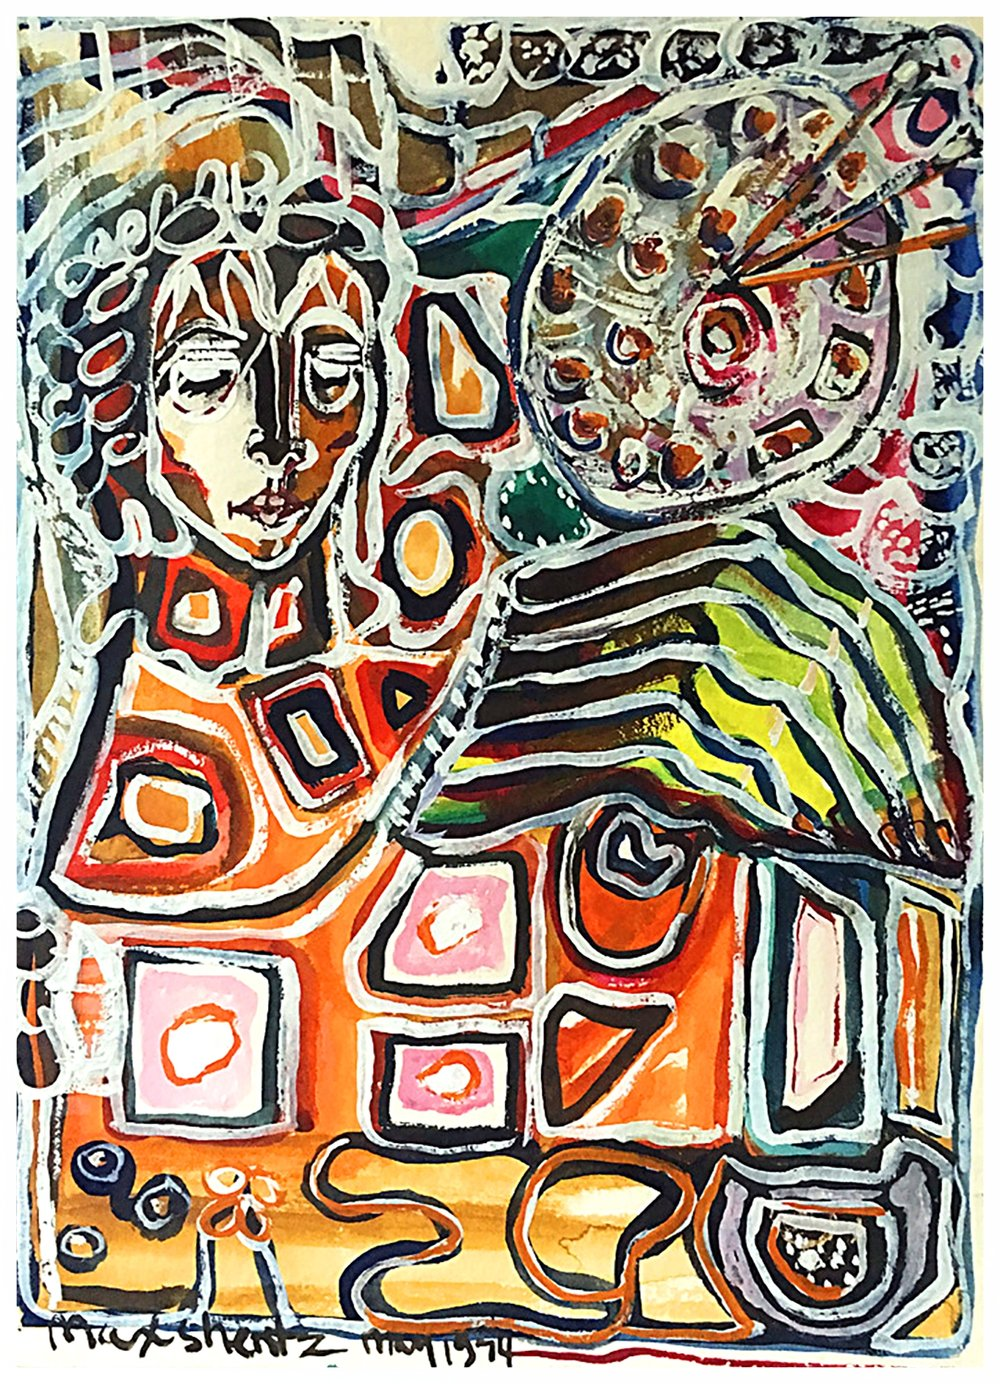 The Mosaic Lady 1974 12x9 Acrylic